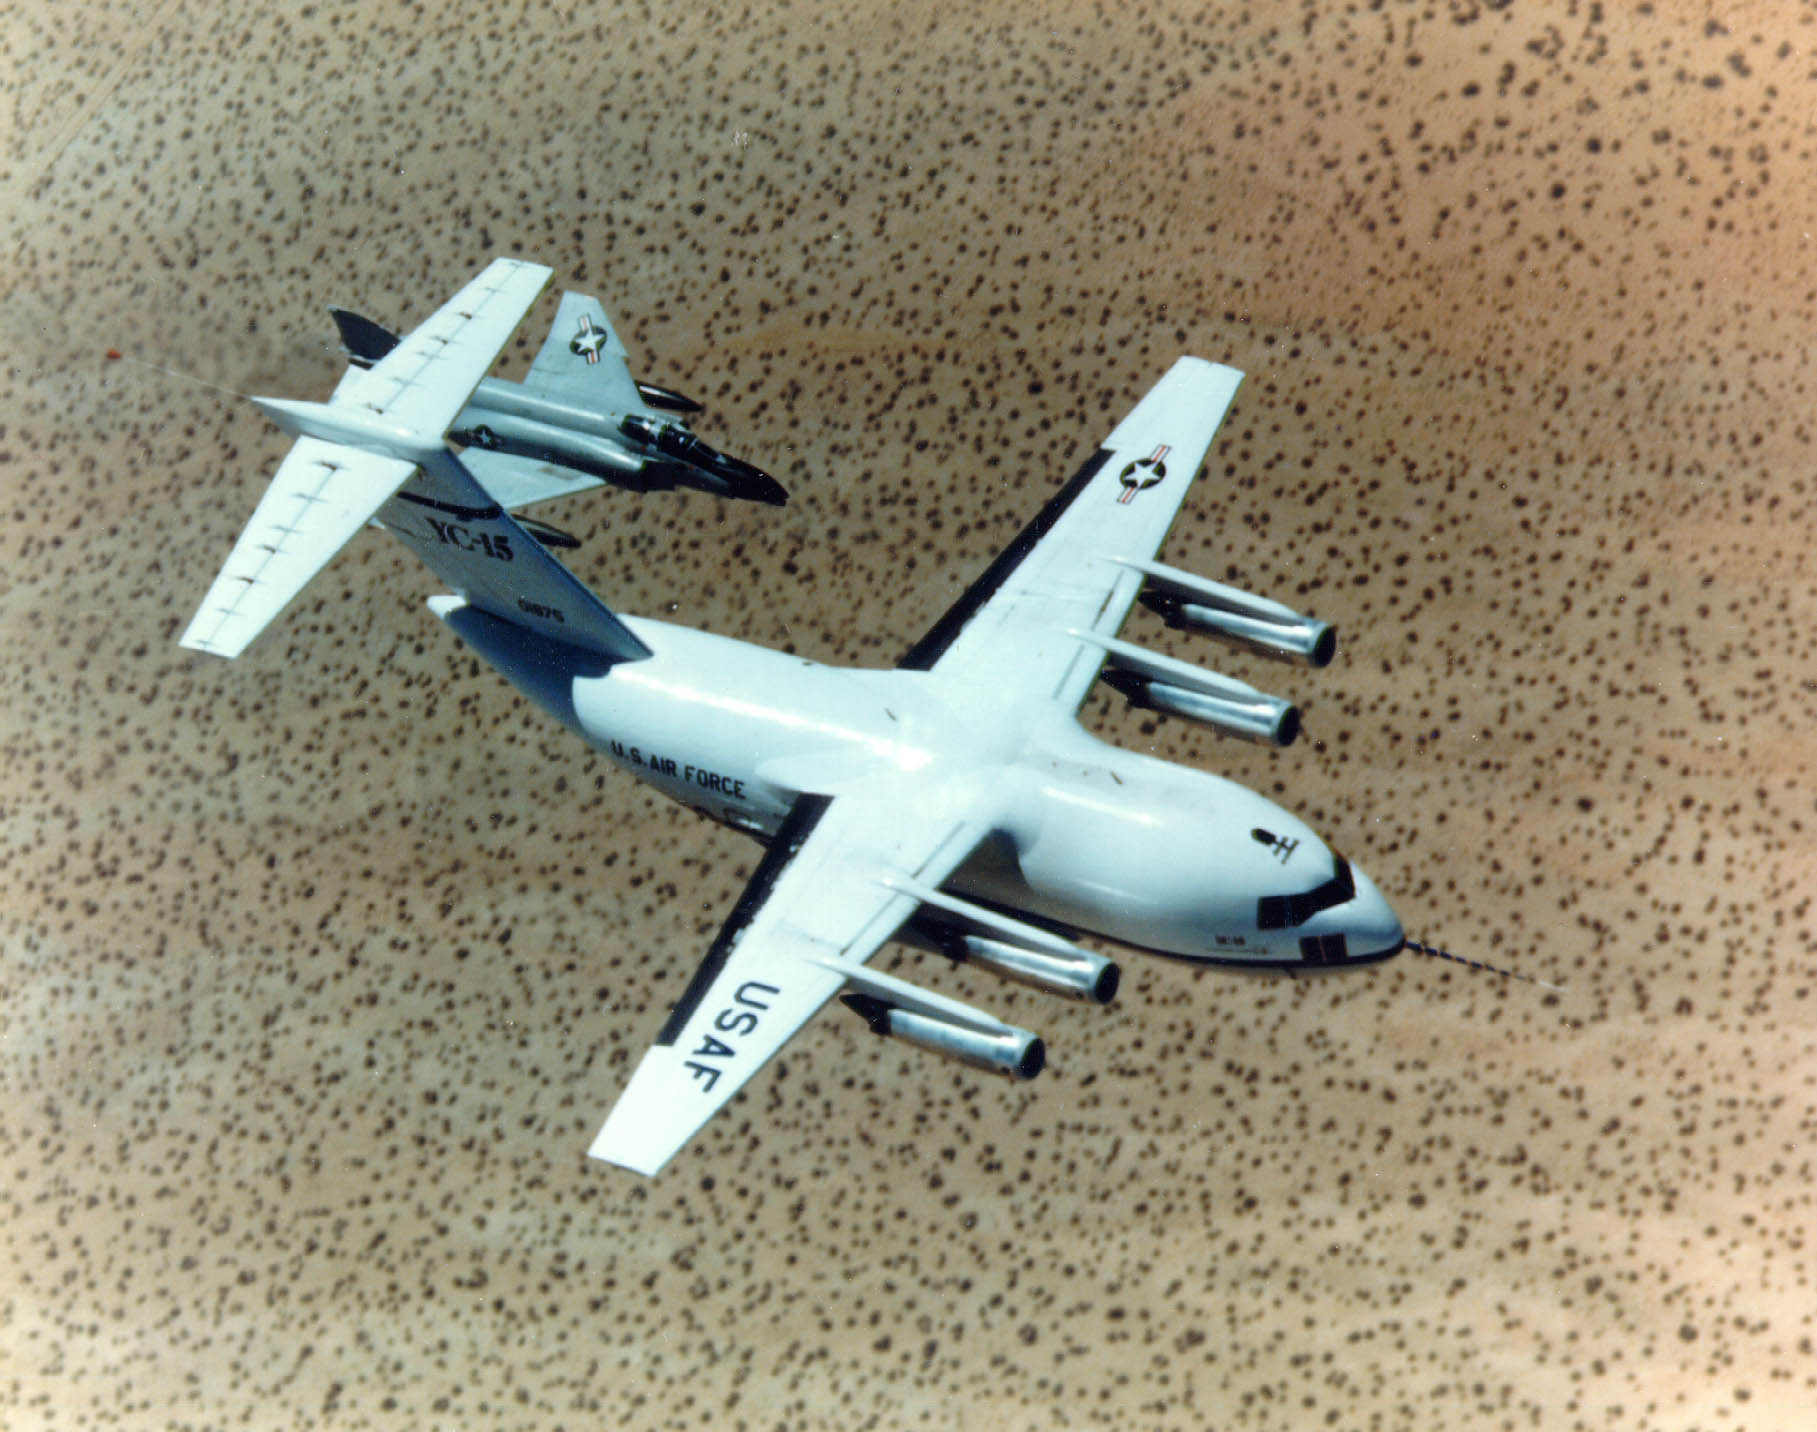 Top view of cargo aircraft in-flight, trailed by a fighter chase aircraft. Under each un-swept wing are two engines suspended forward ahead the leading edge.